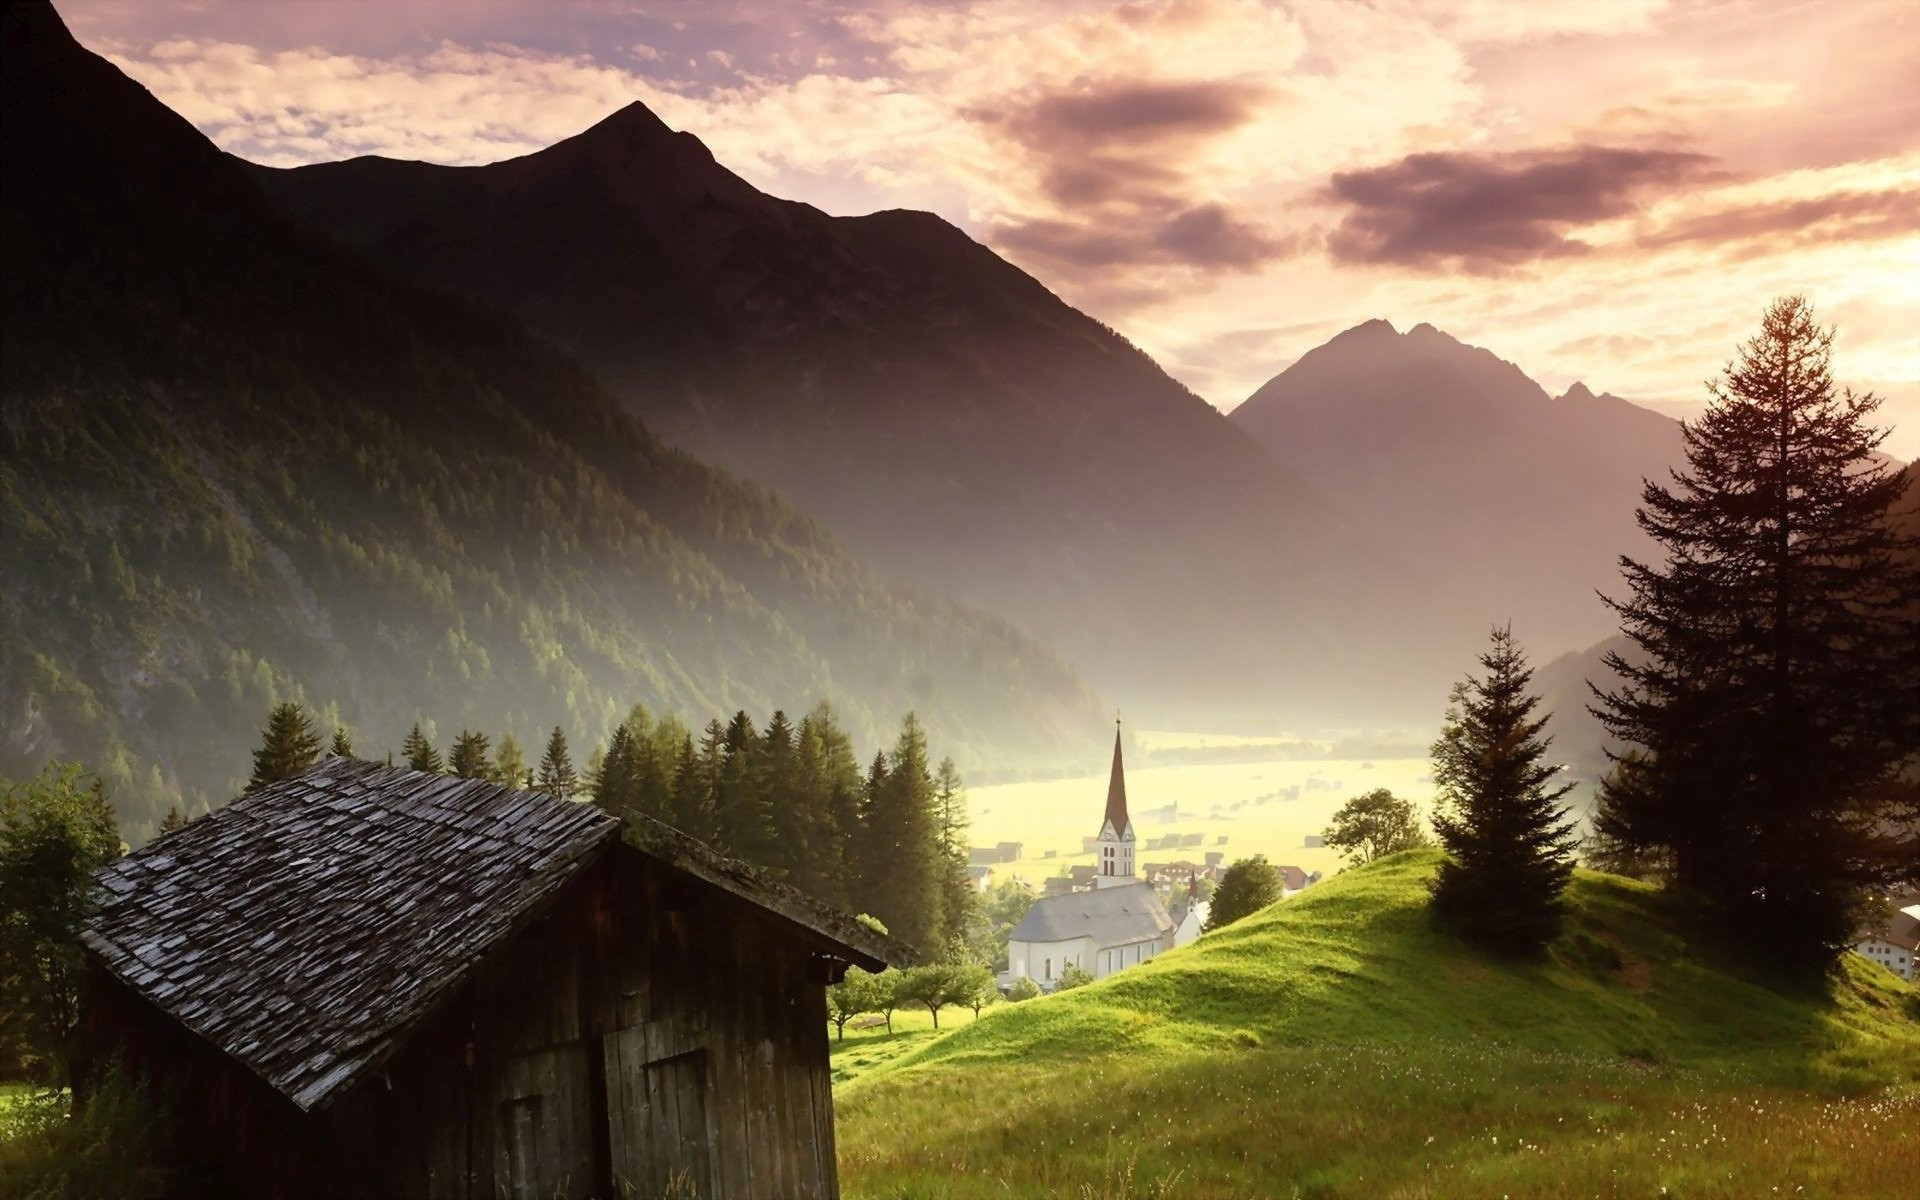 Res: 1920x1200, Nature, Sky, Cloud, Tree, Mountain, Summer, Church, Cottage, Wallpaper, ,  Hd Wallpapers, Amazing Photos, Widescreen Wallpapers, 1920×1200 Wallpaper HD